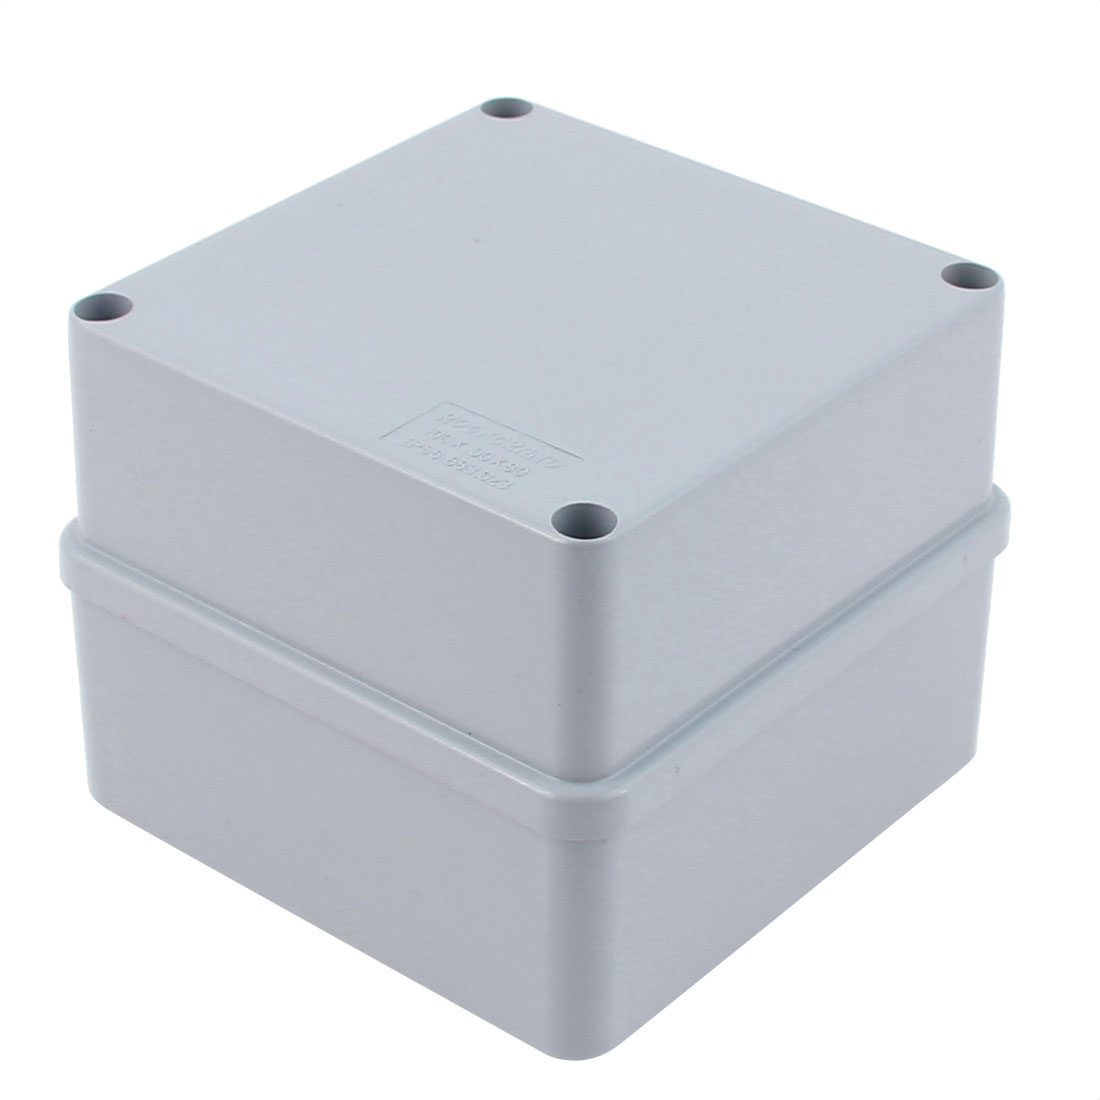 100 x 100 x 80mm Dustproof IP65 Junction Box DIY Sealed Connecting Box Enclosure